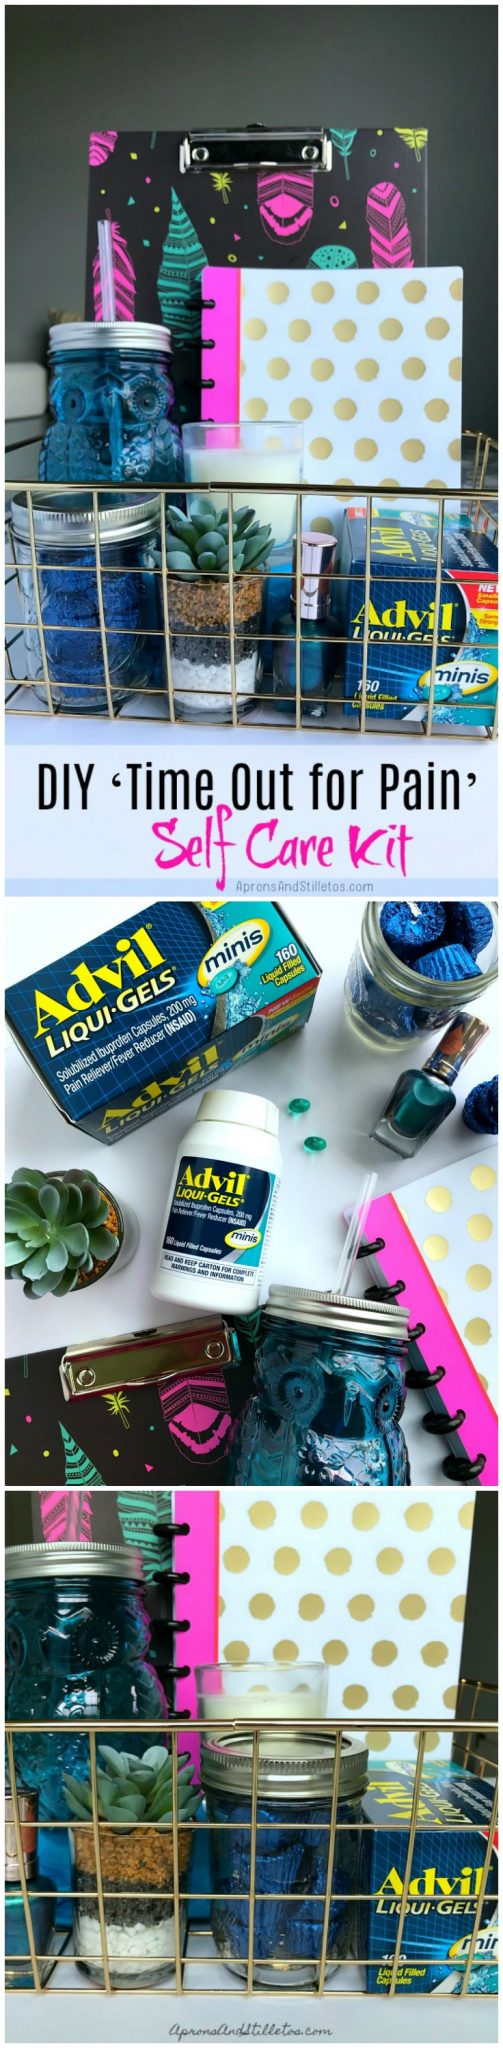 DIY Time Out for Pain Self Care Kit